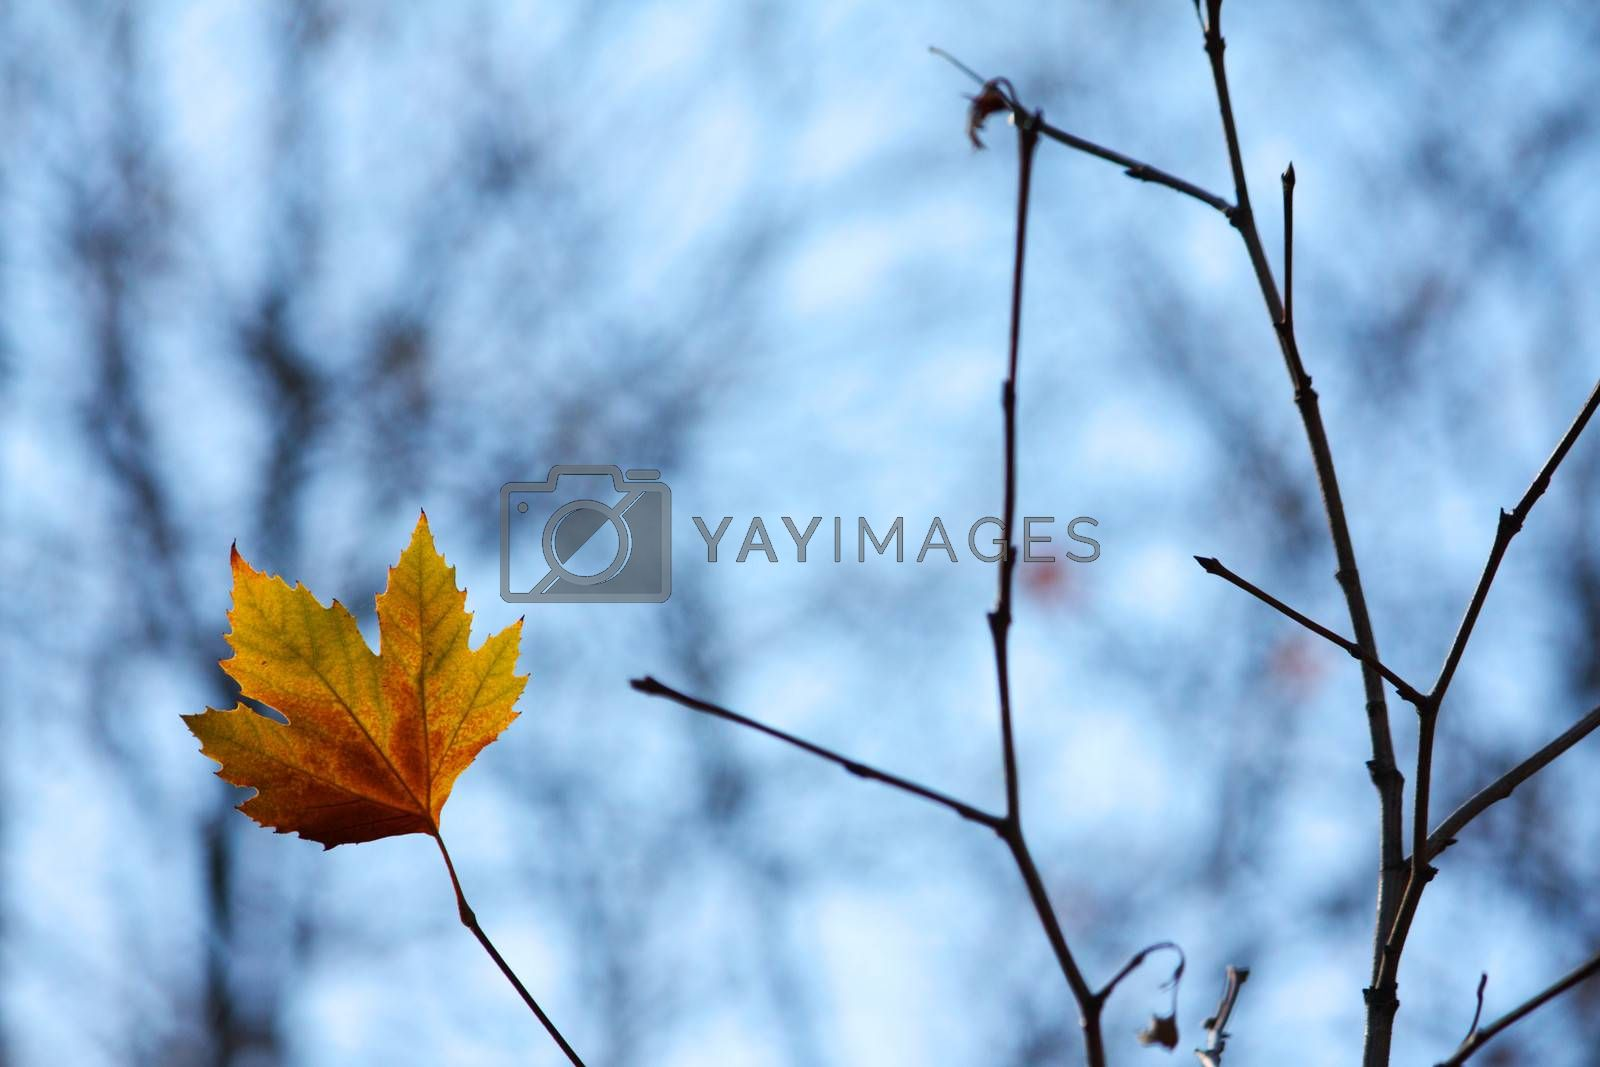 Lonely maple leaf on a brench